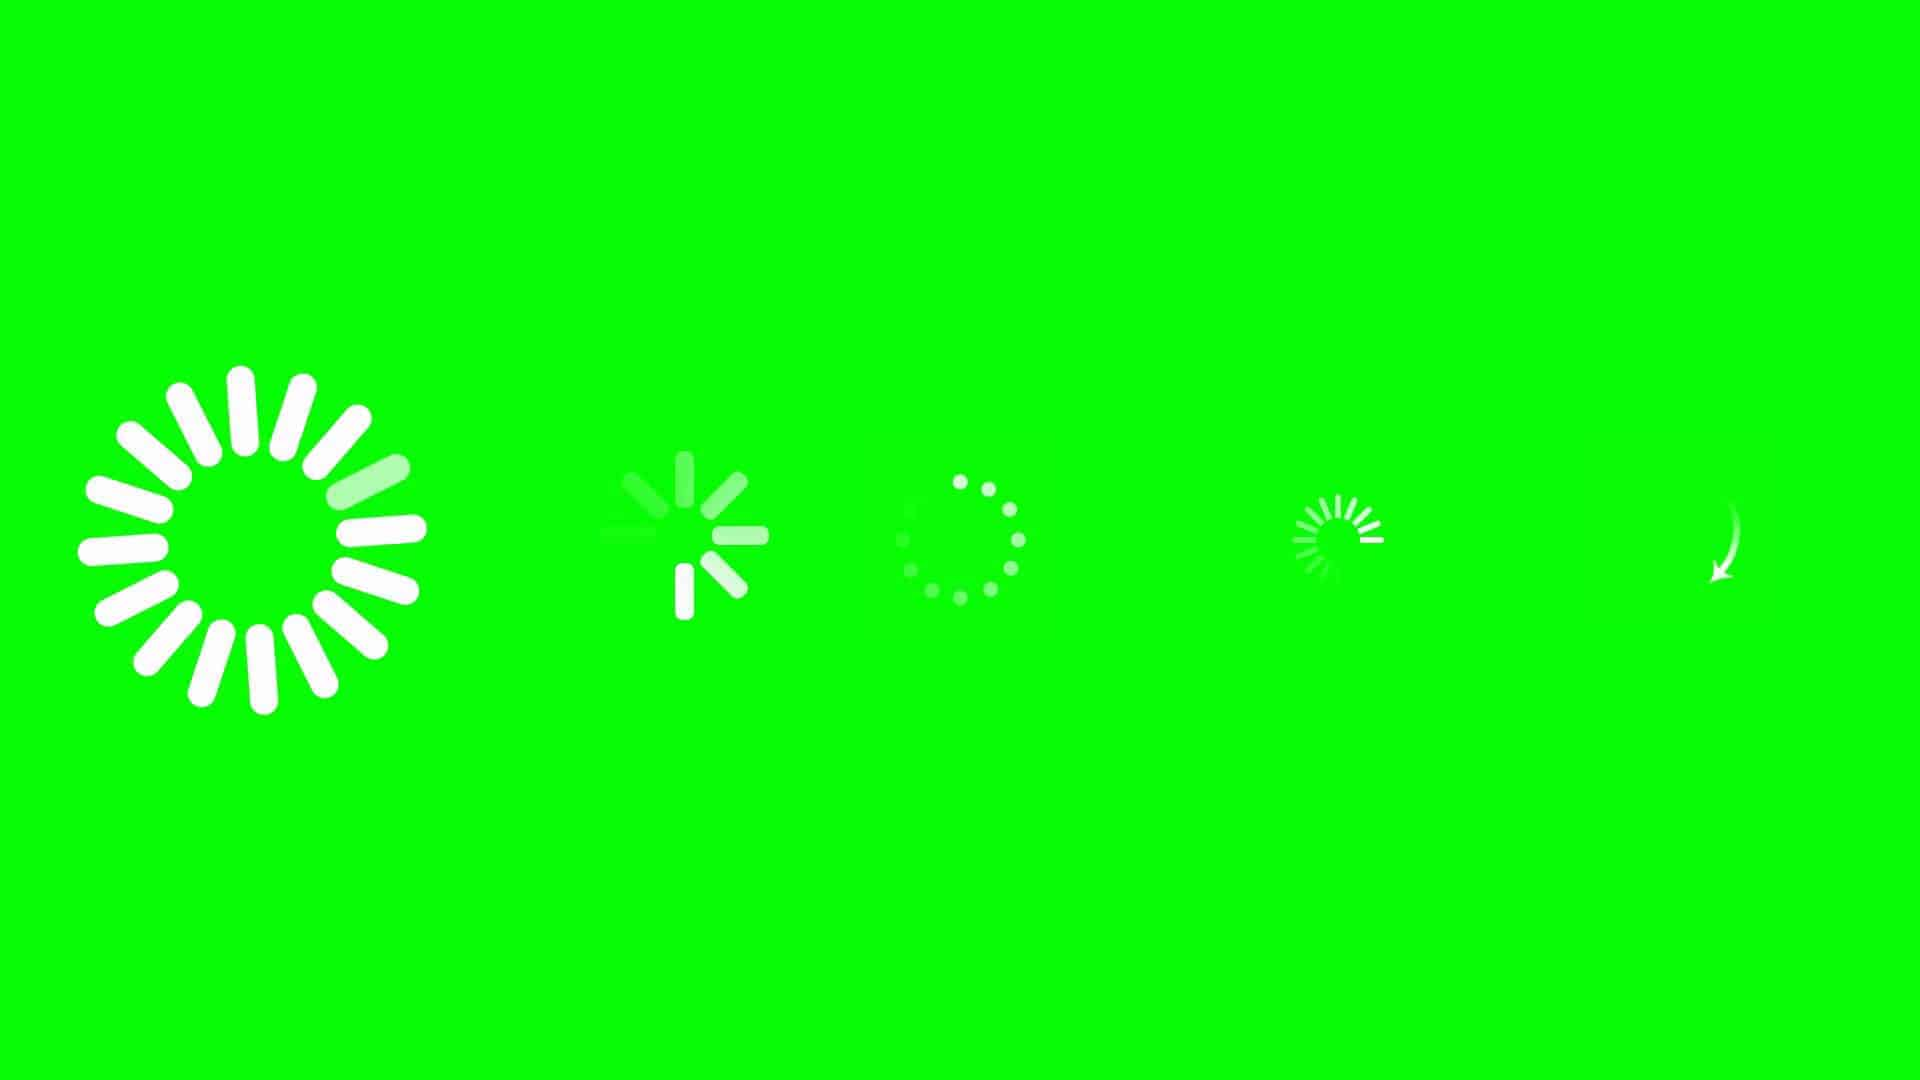 Your enemy: the dreaded buffering icon.